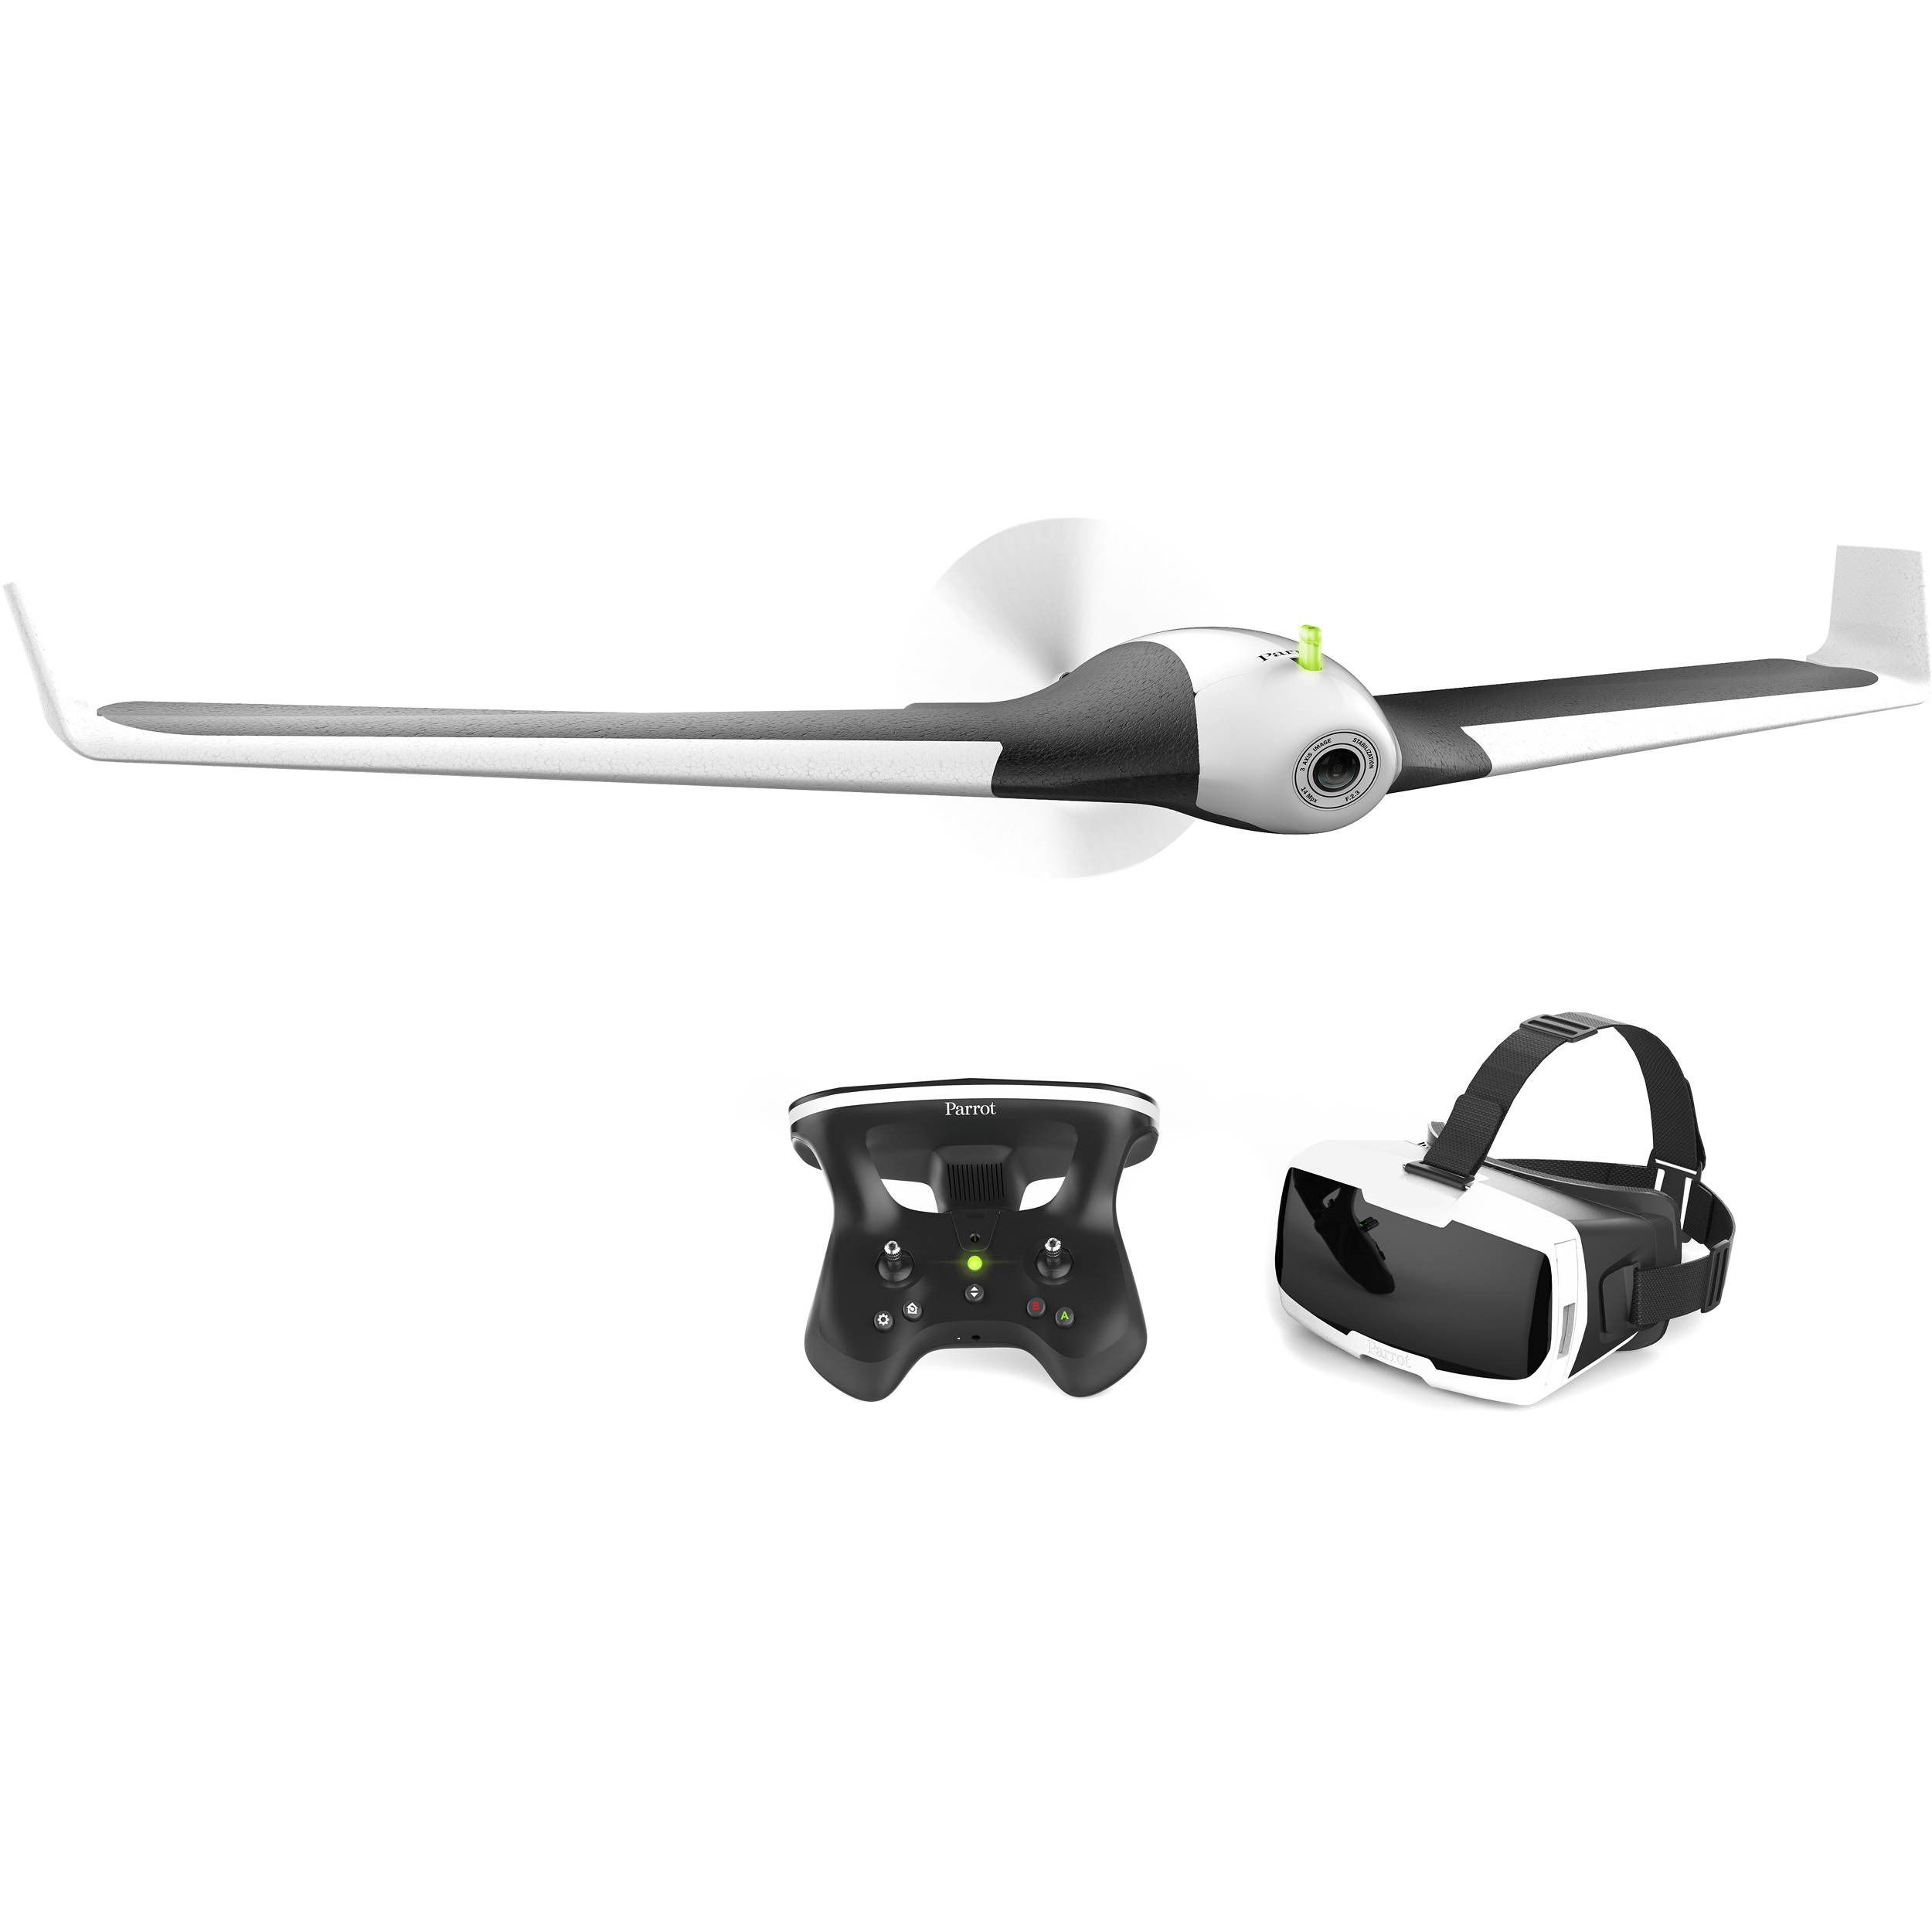 parrot drone hd with Parrot Pf750001 Disco W Skycontroller 2 on F 1128602 Sho3700716110587 furthermore 87507 drone Volant Une Nouvelle Interpellation A La Tour Eiffel Cette Fois also Watch also Dji Phantom 4 Pro Quadcopter Built 5 5 Hd Screen additionally Watch.